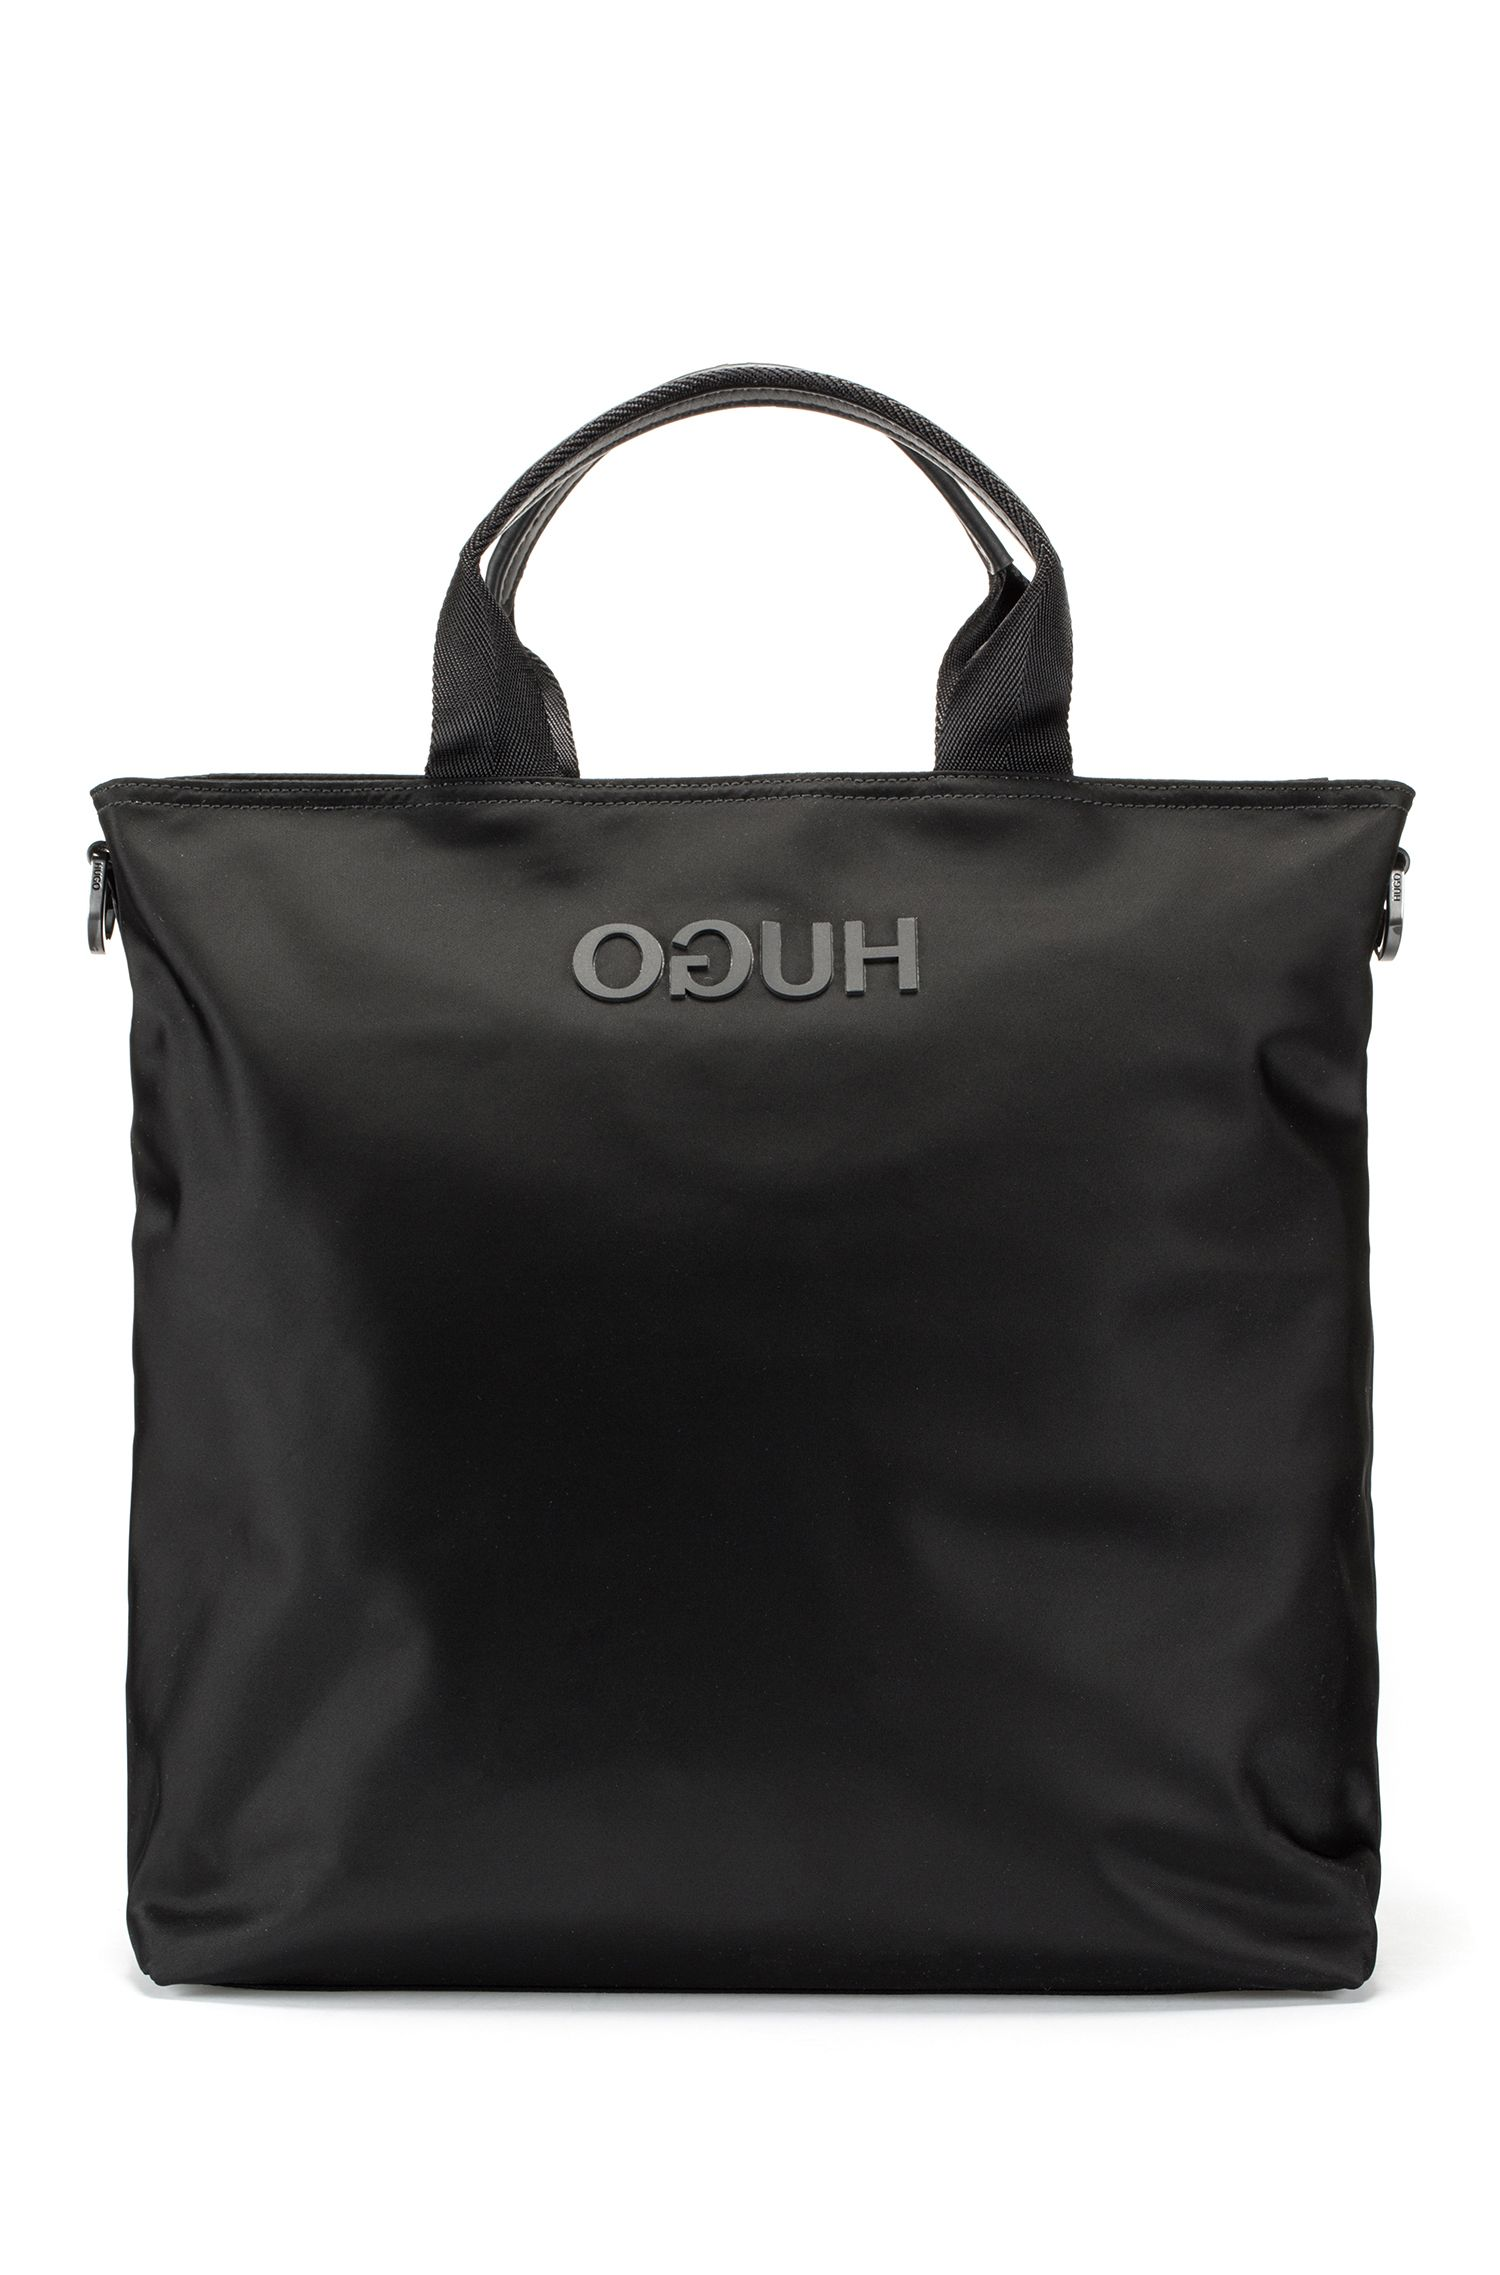 Record-style tote bag with rubberised reverse logo